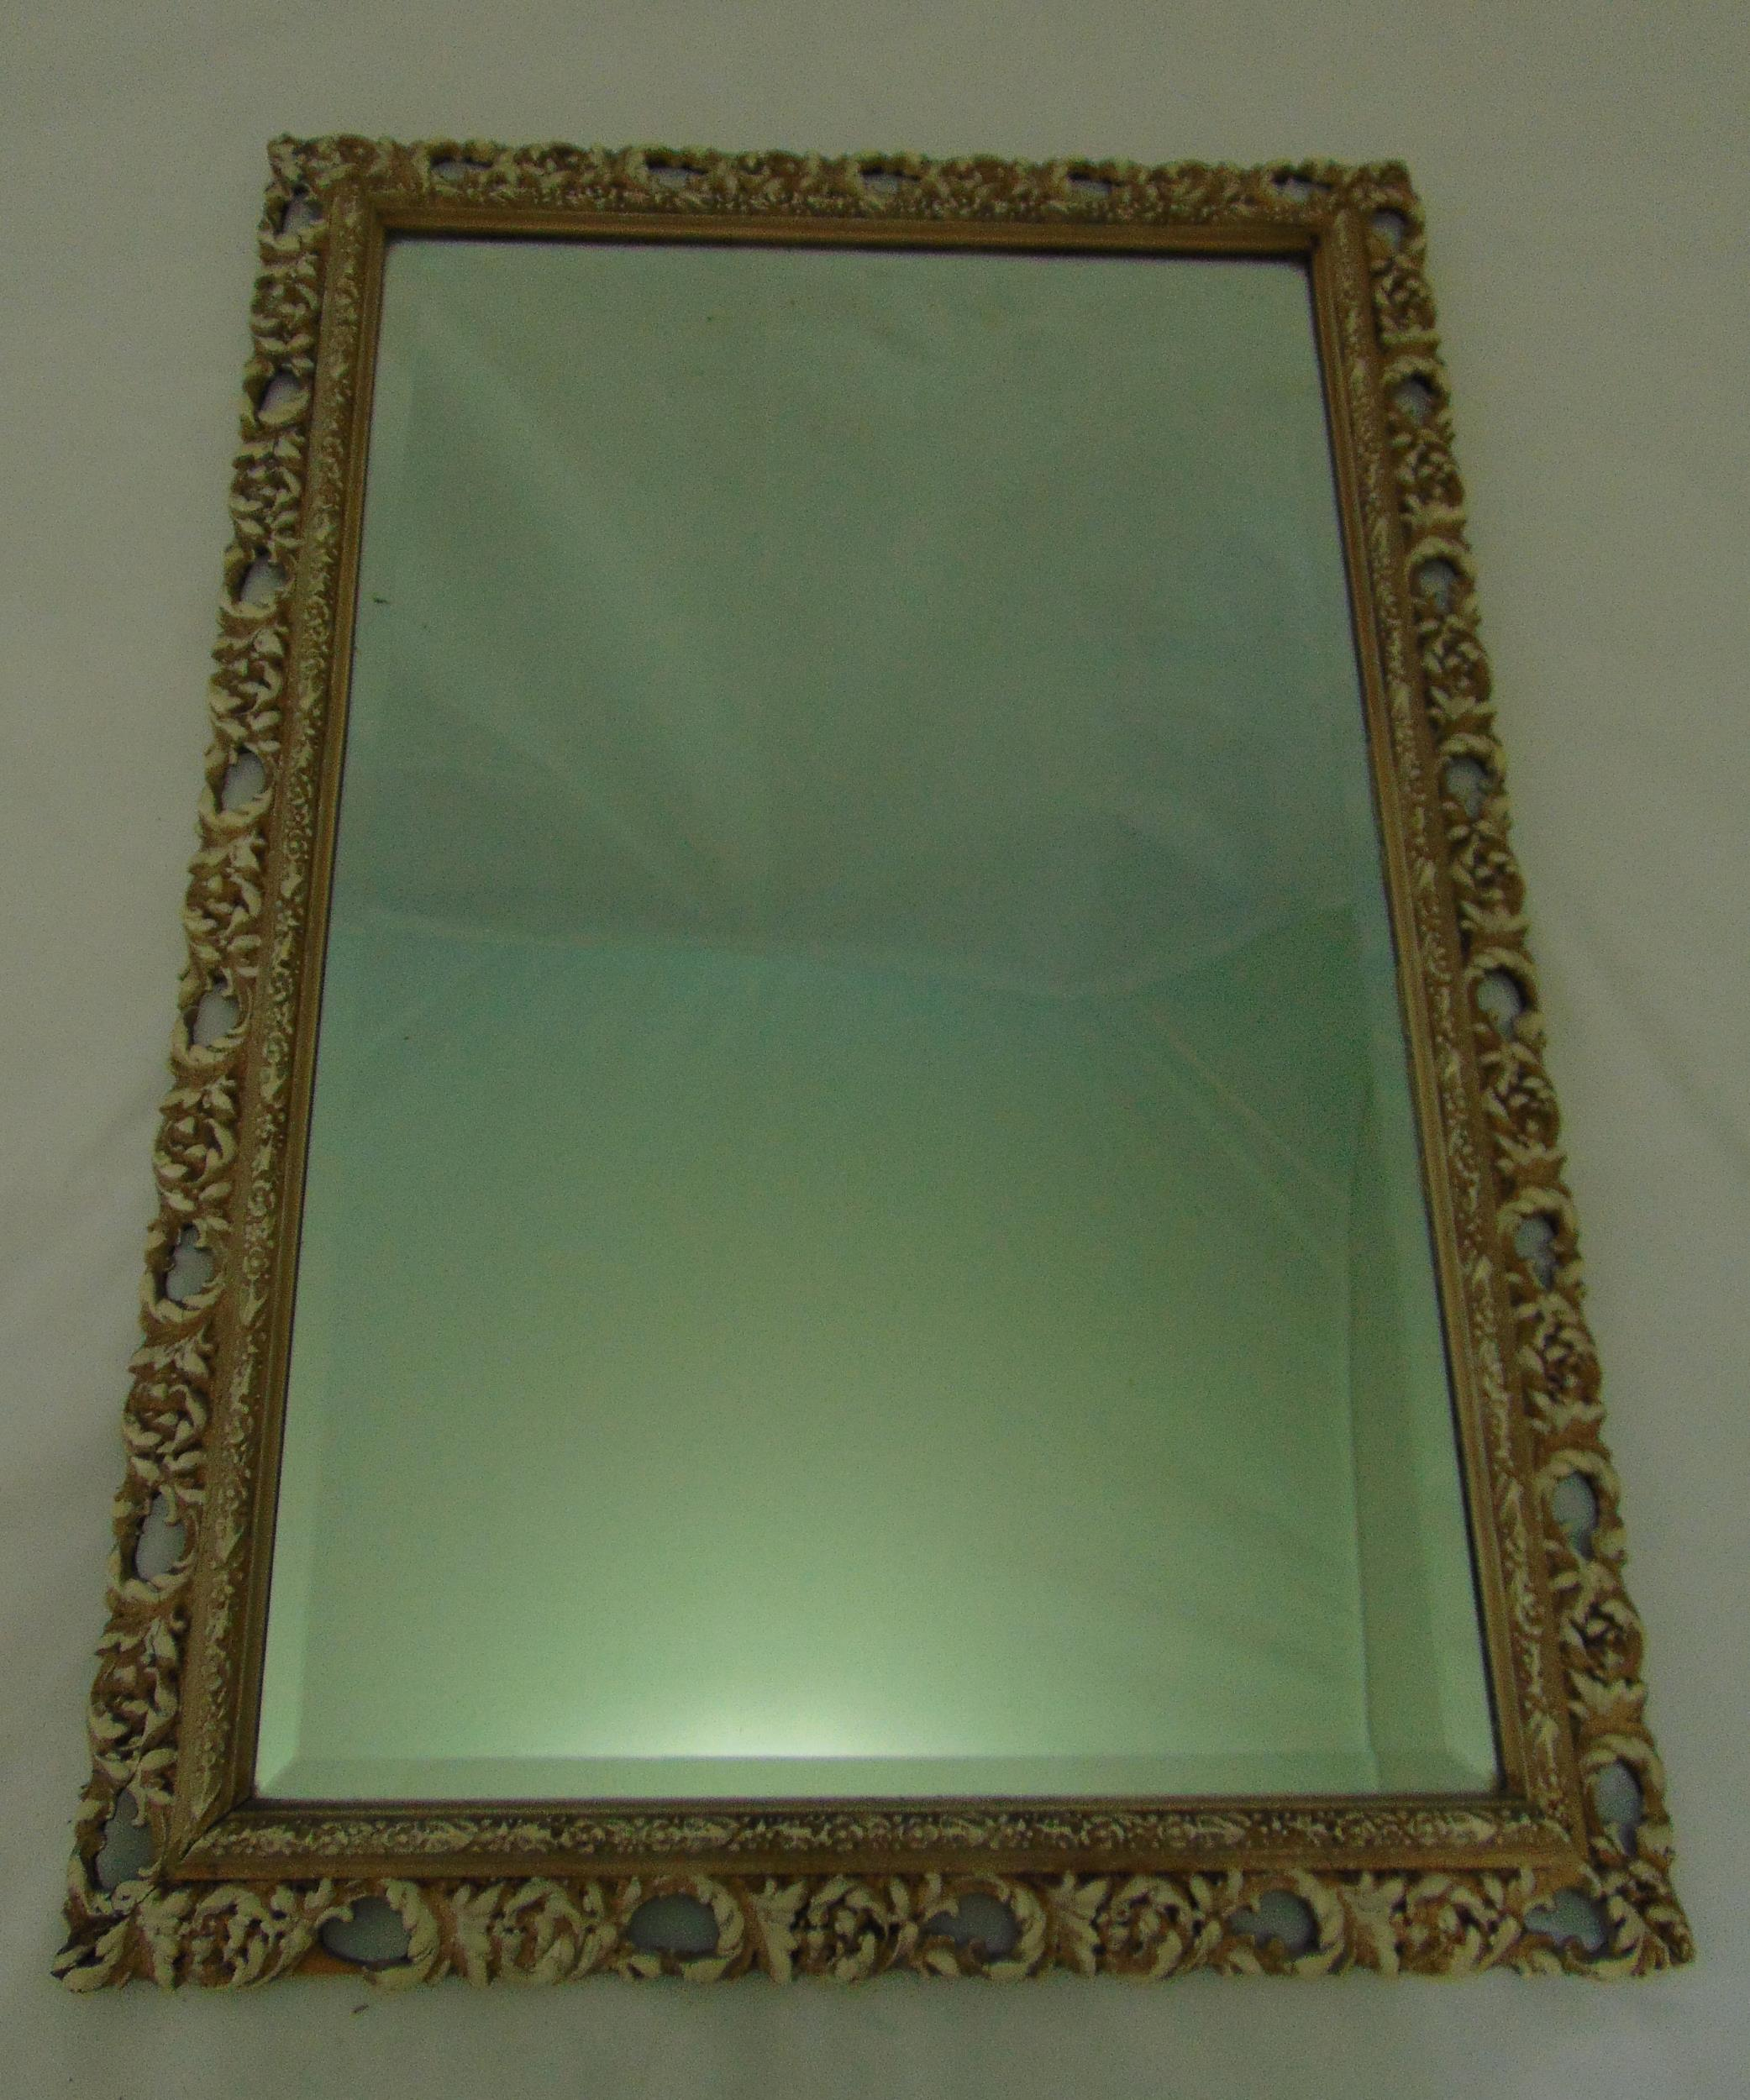 A rectangular scroll pierced and stained wooden mirror with bevelled edge, 73.5 x 51cm